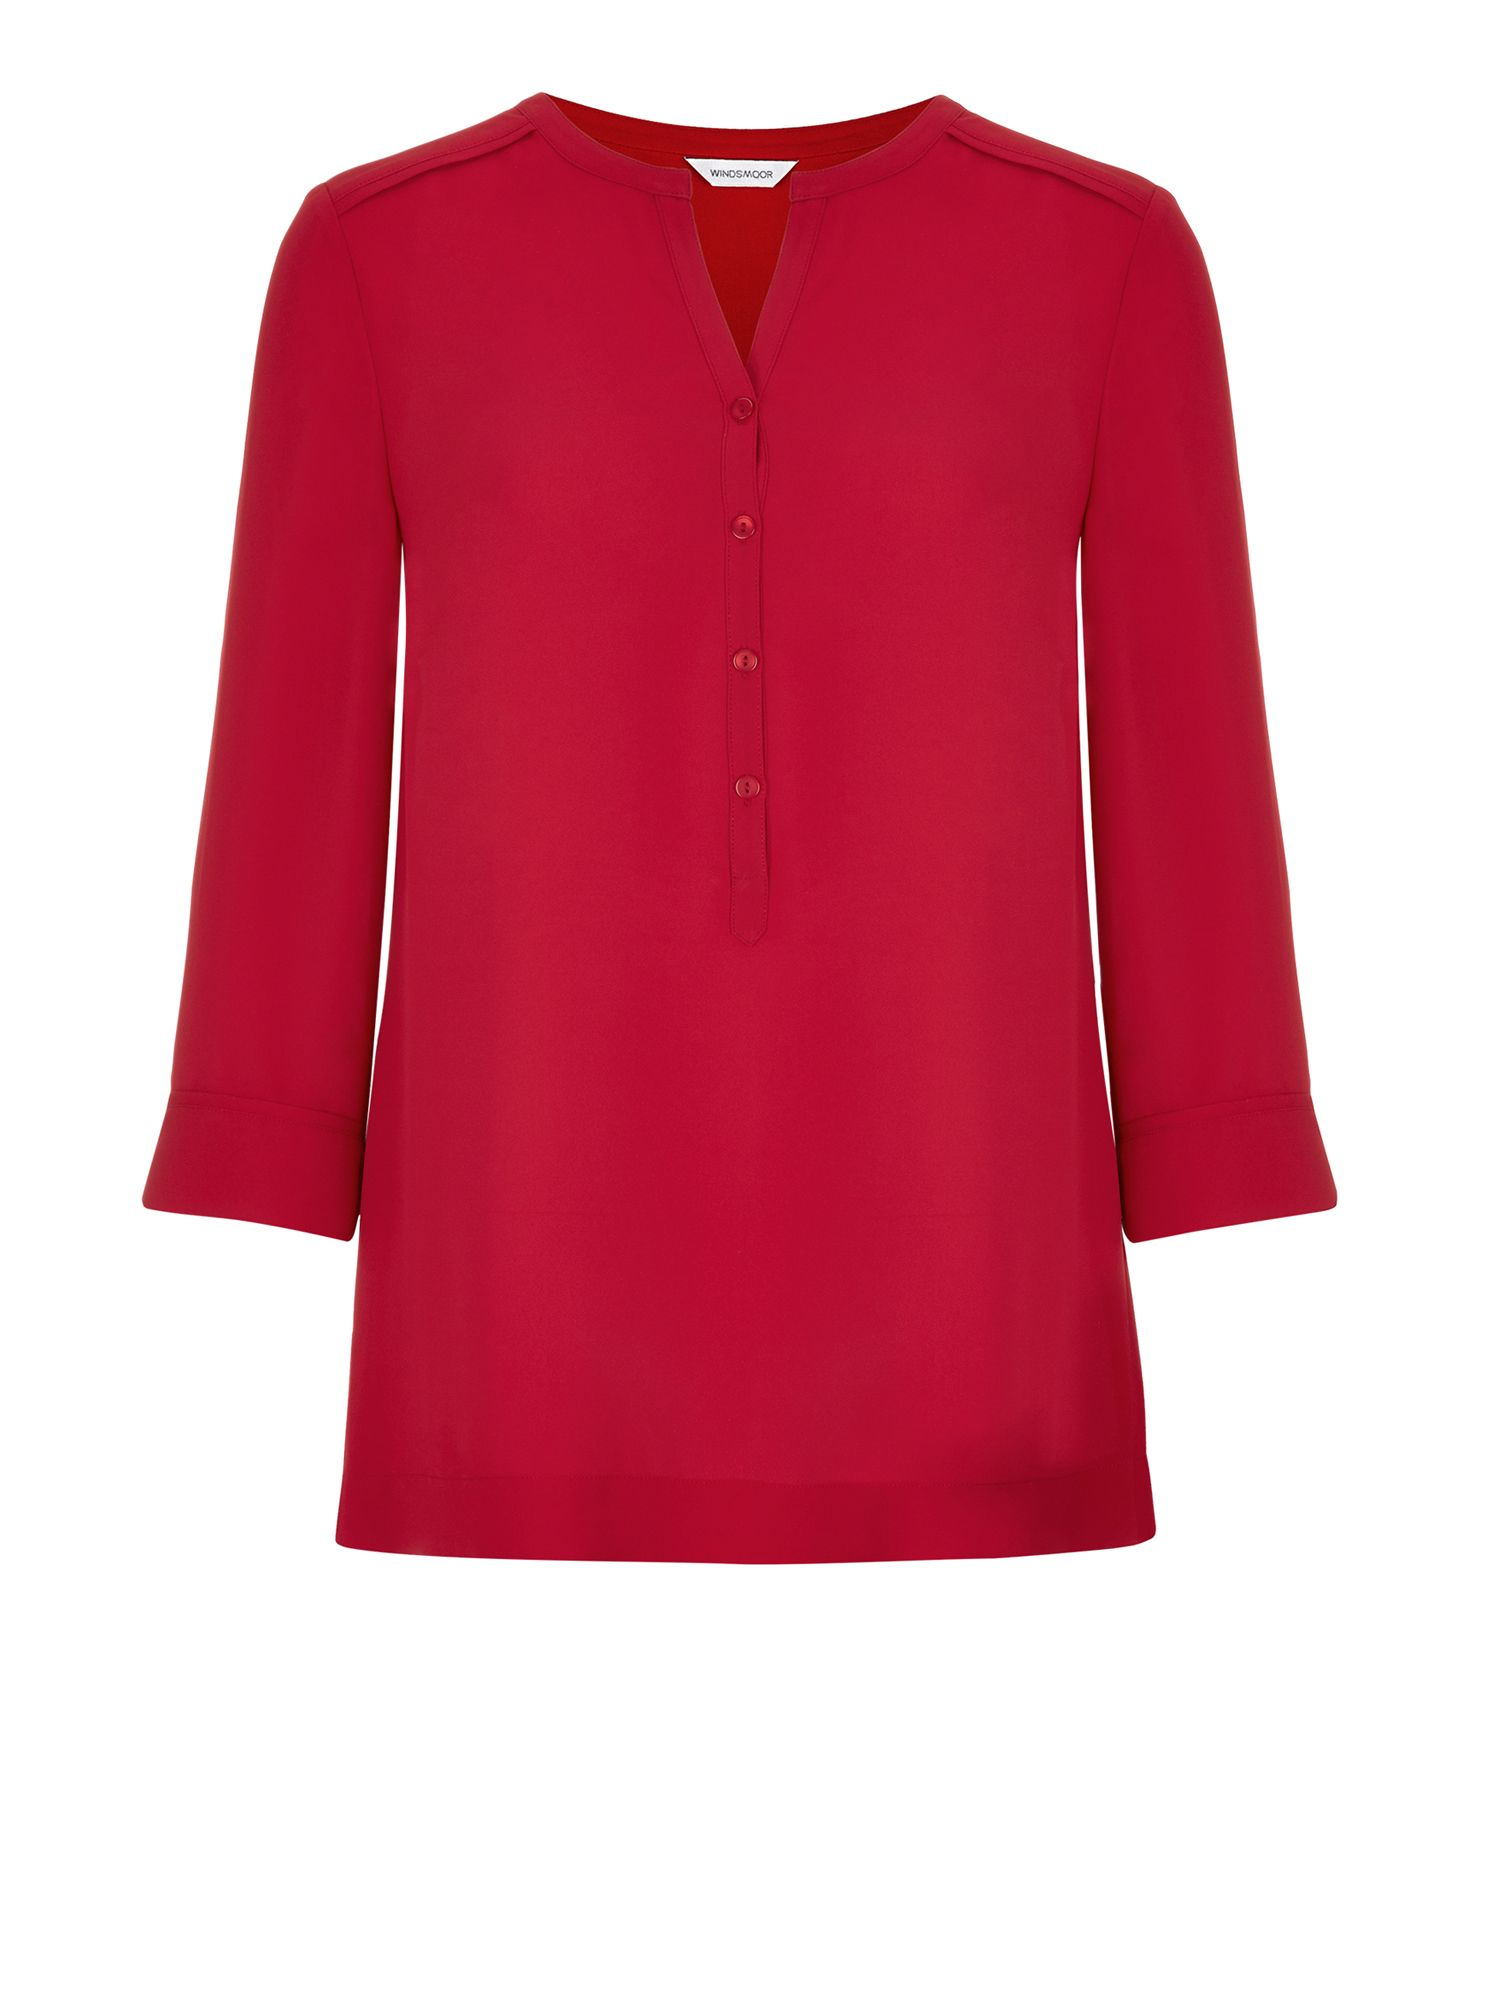 Windsmoor Red Blouse